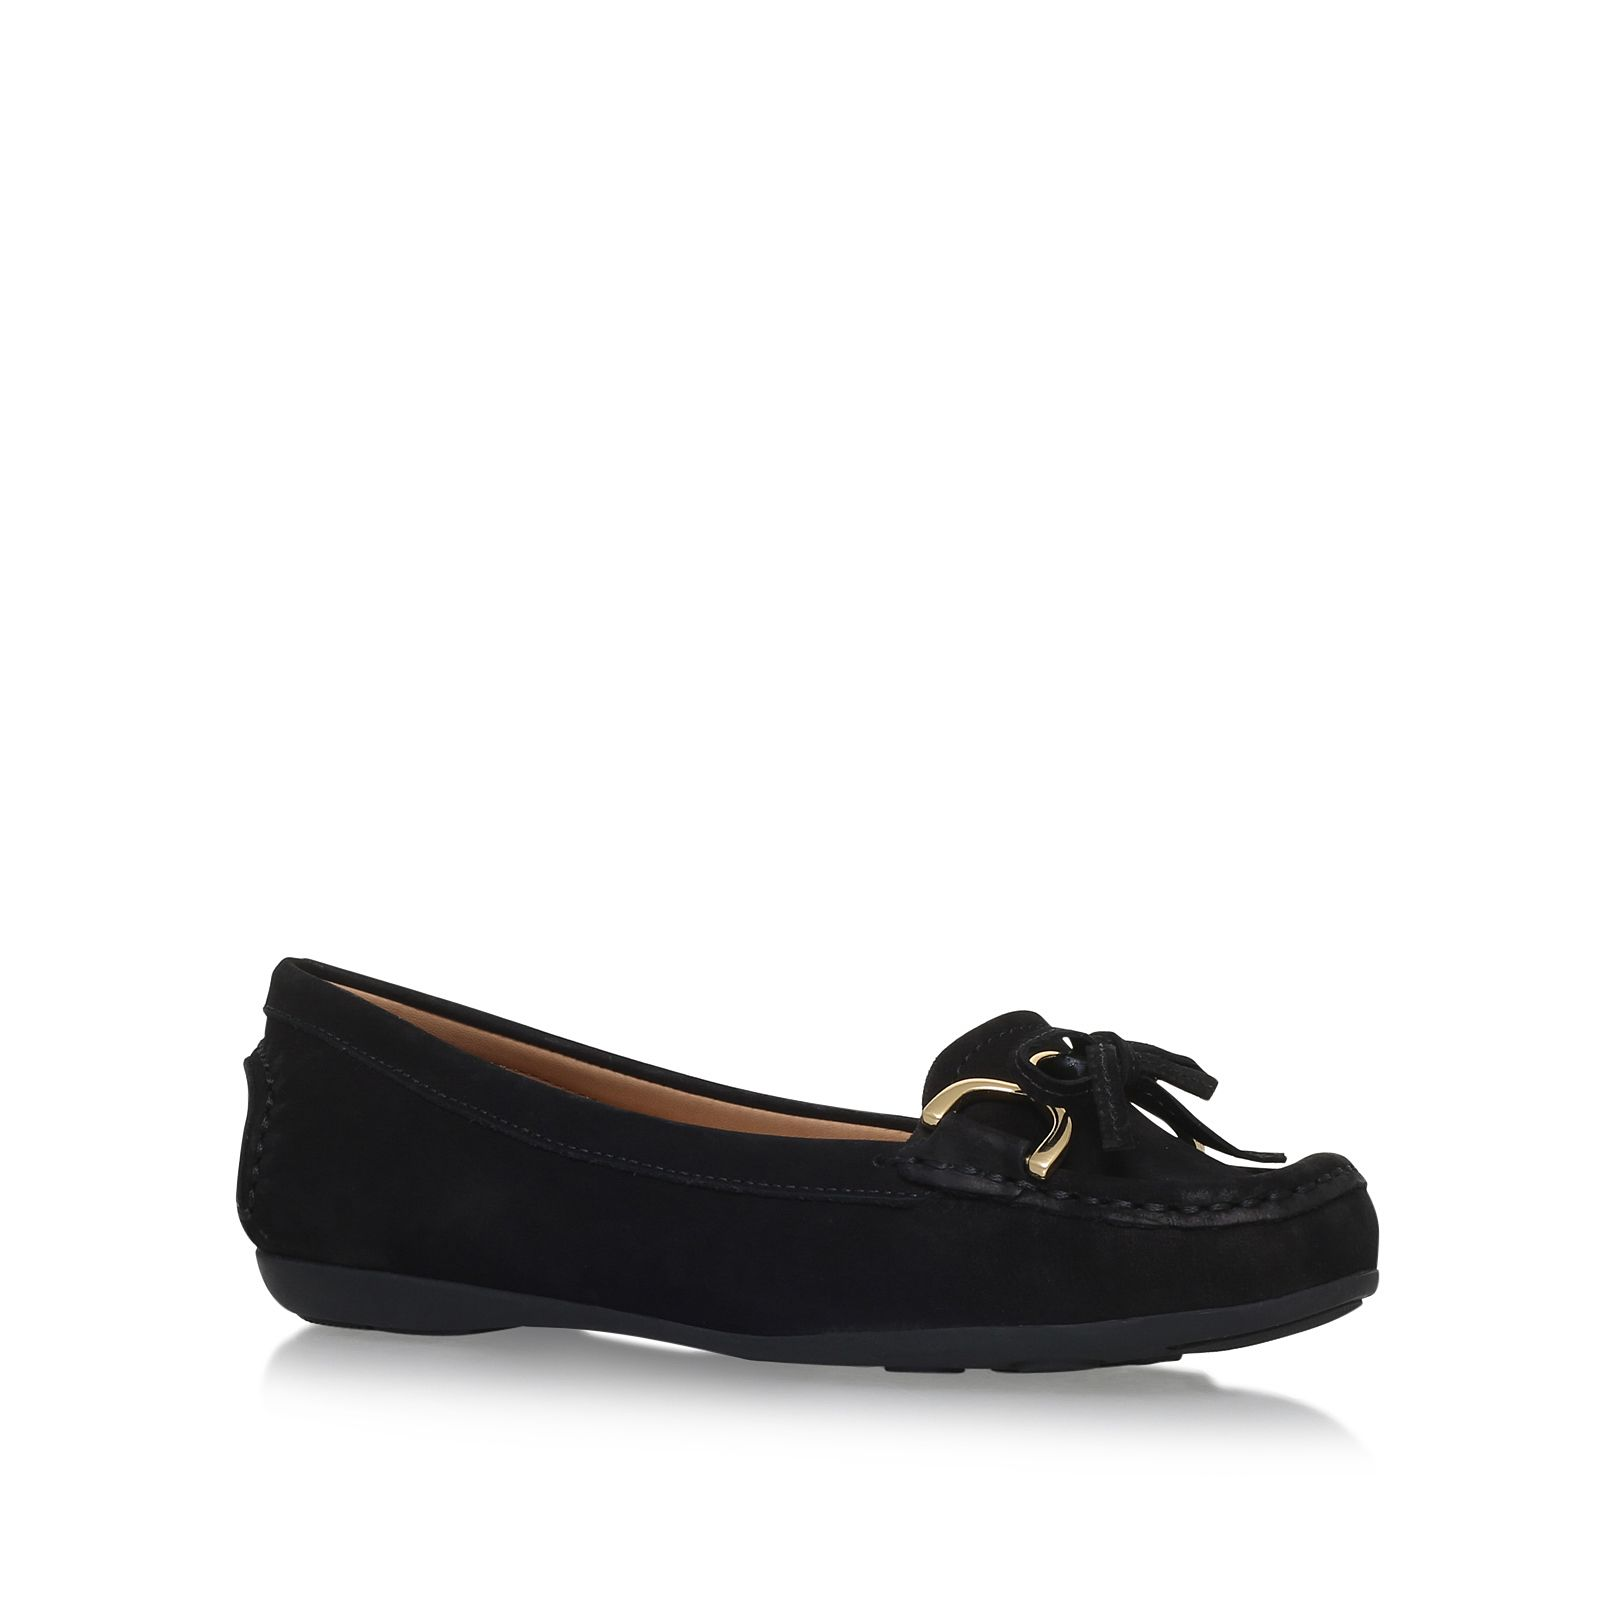 Carvela Comfort Cally Loafers, Black